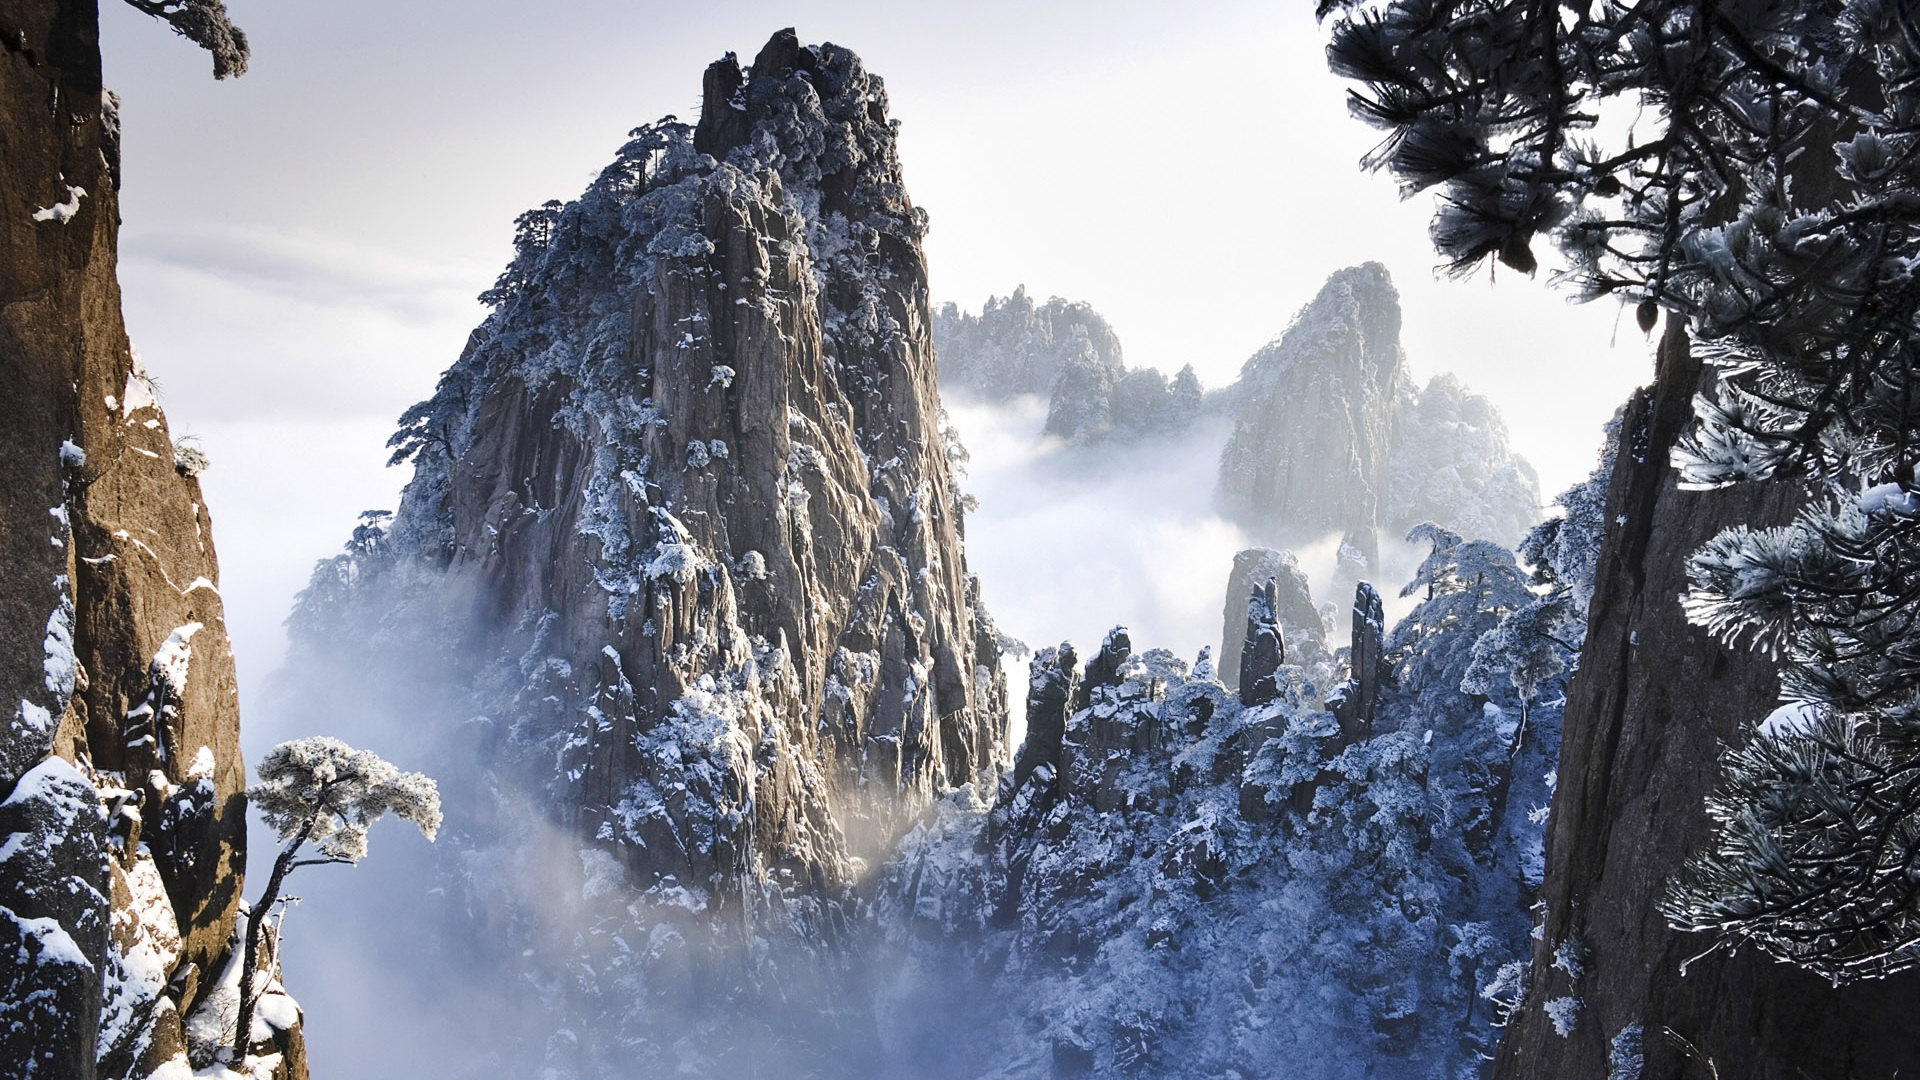 Huangshan-Gebirge im Winter in Anhui, China ...